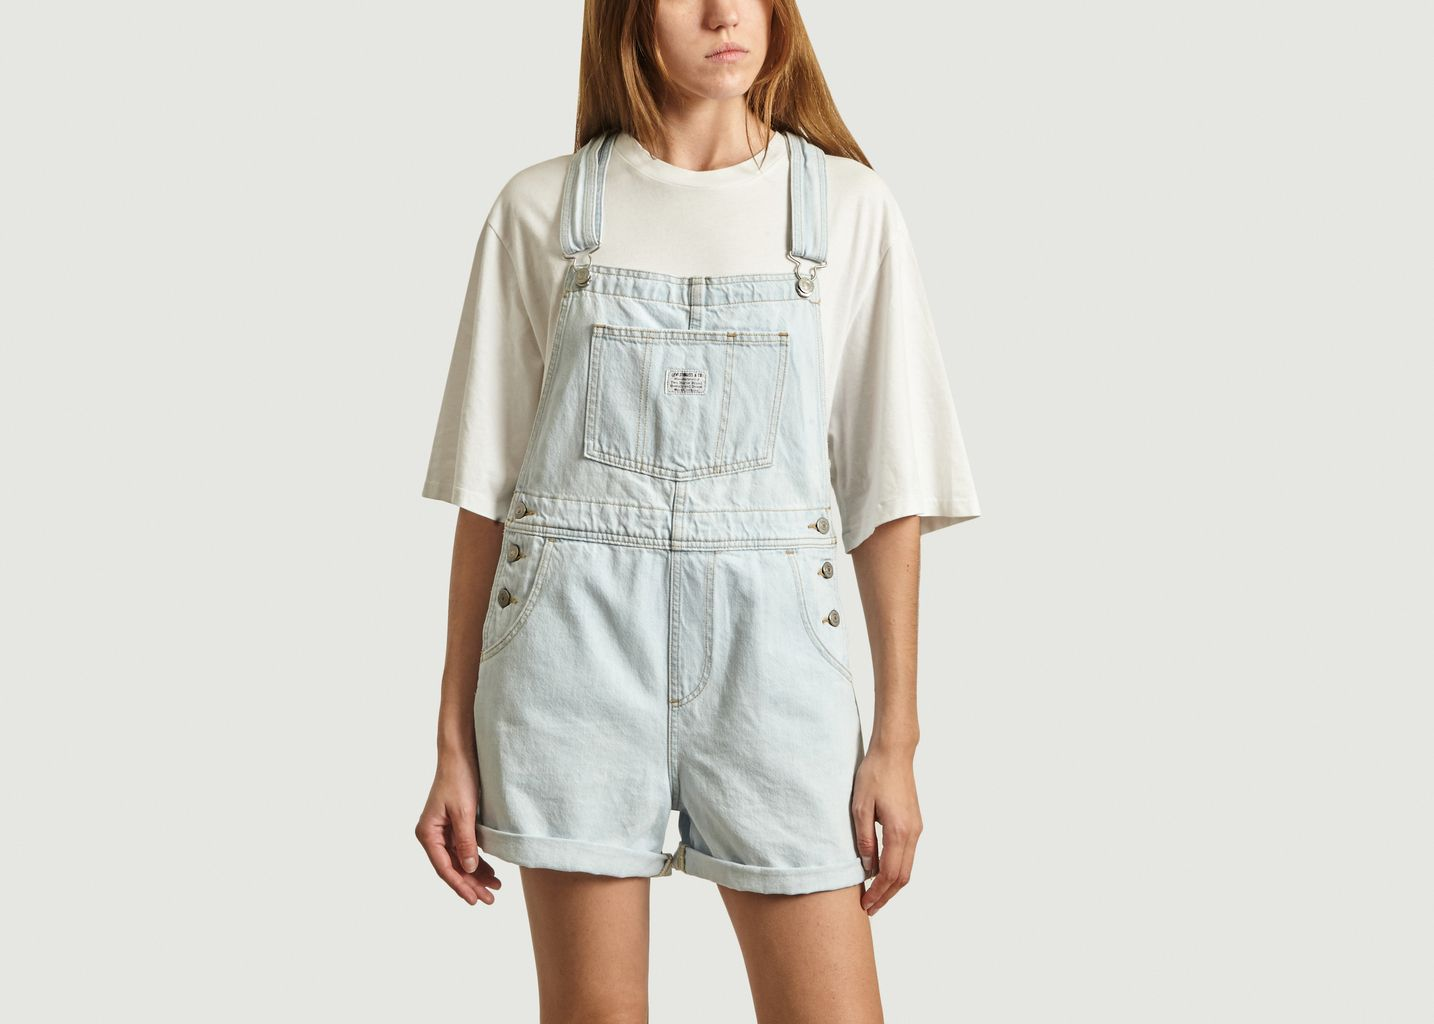 Salopette Courte Vintage En Denim - Levi's Red Tab